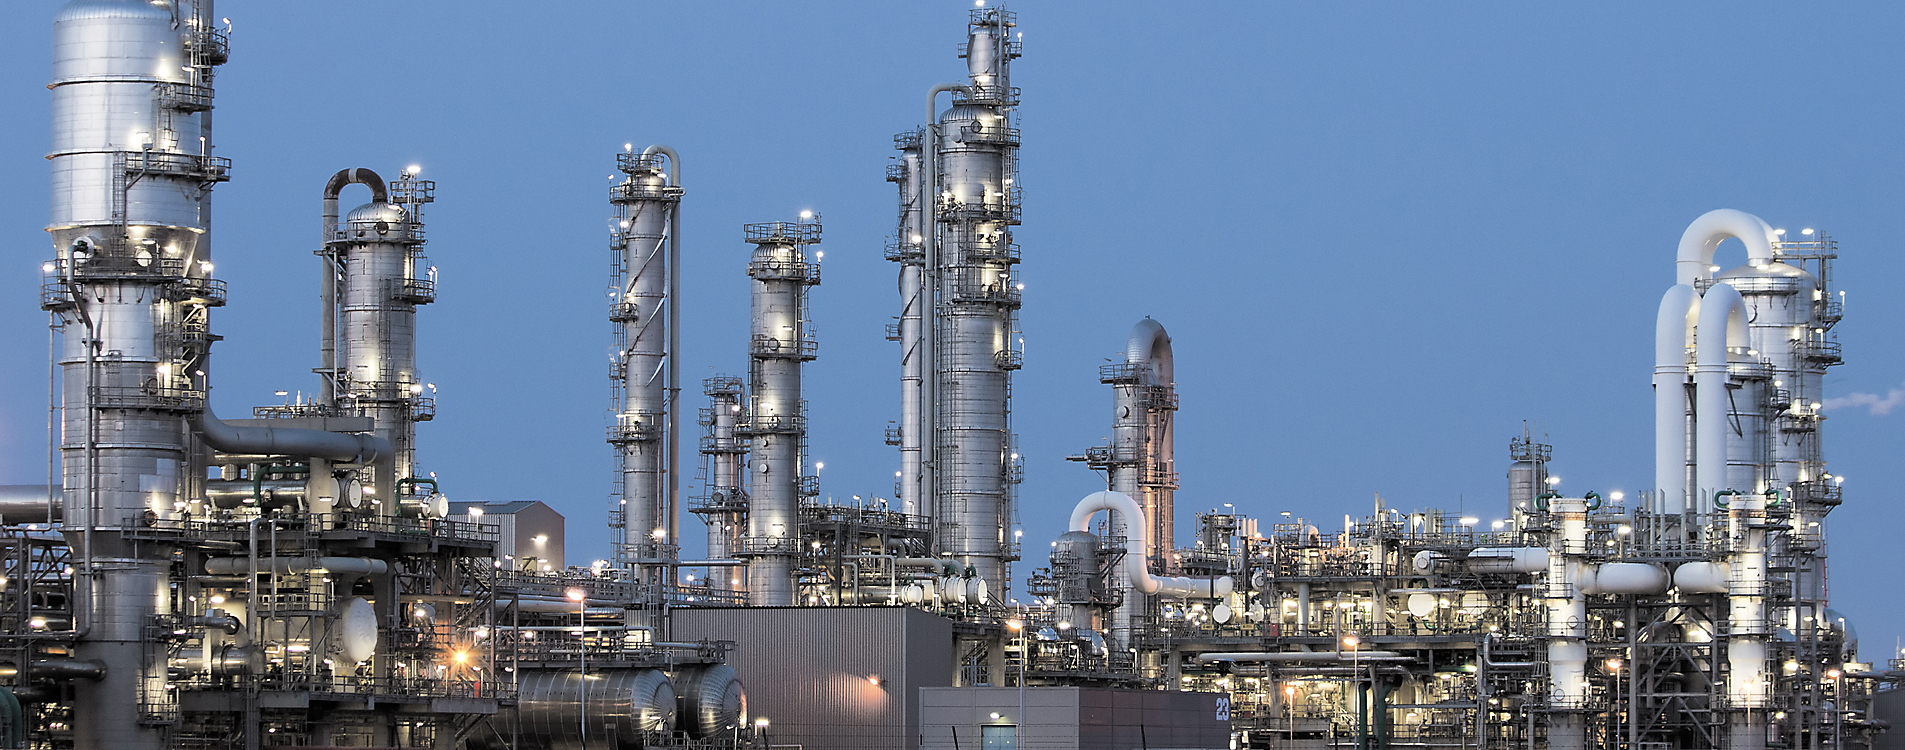 Refineries and Petrochemical